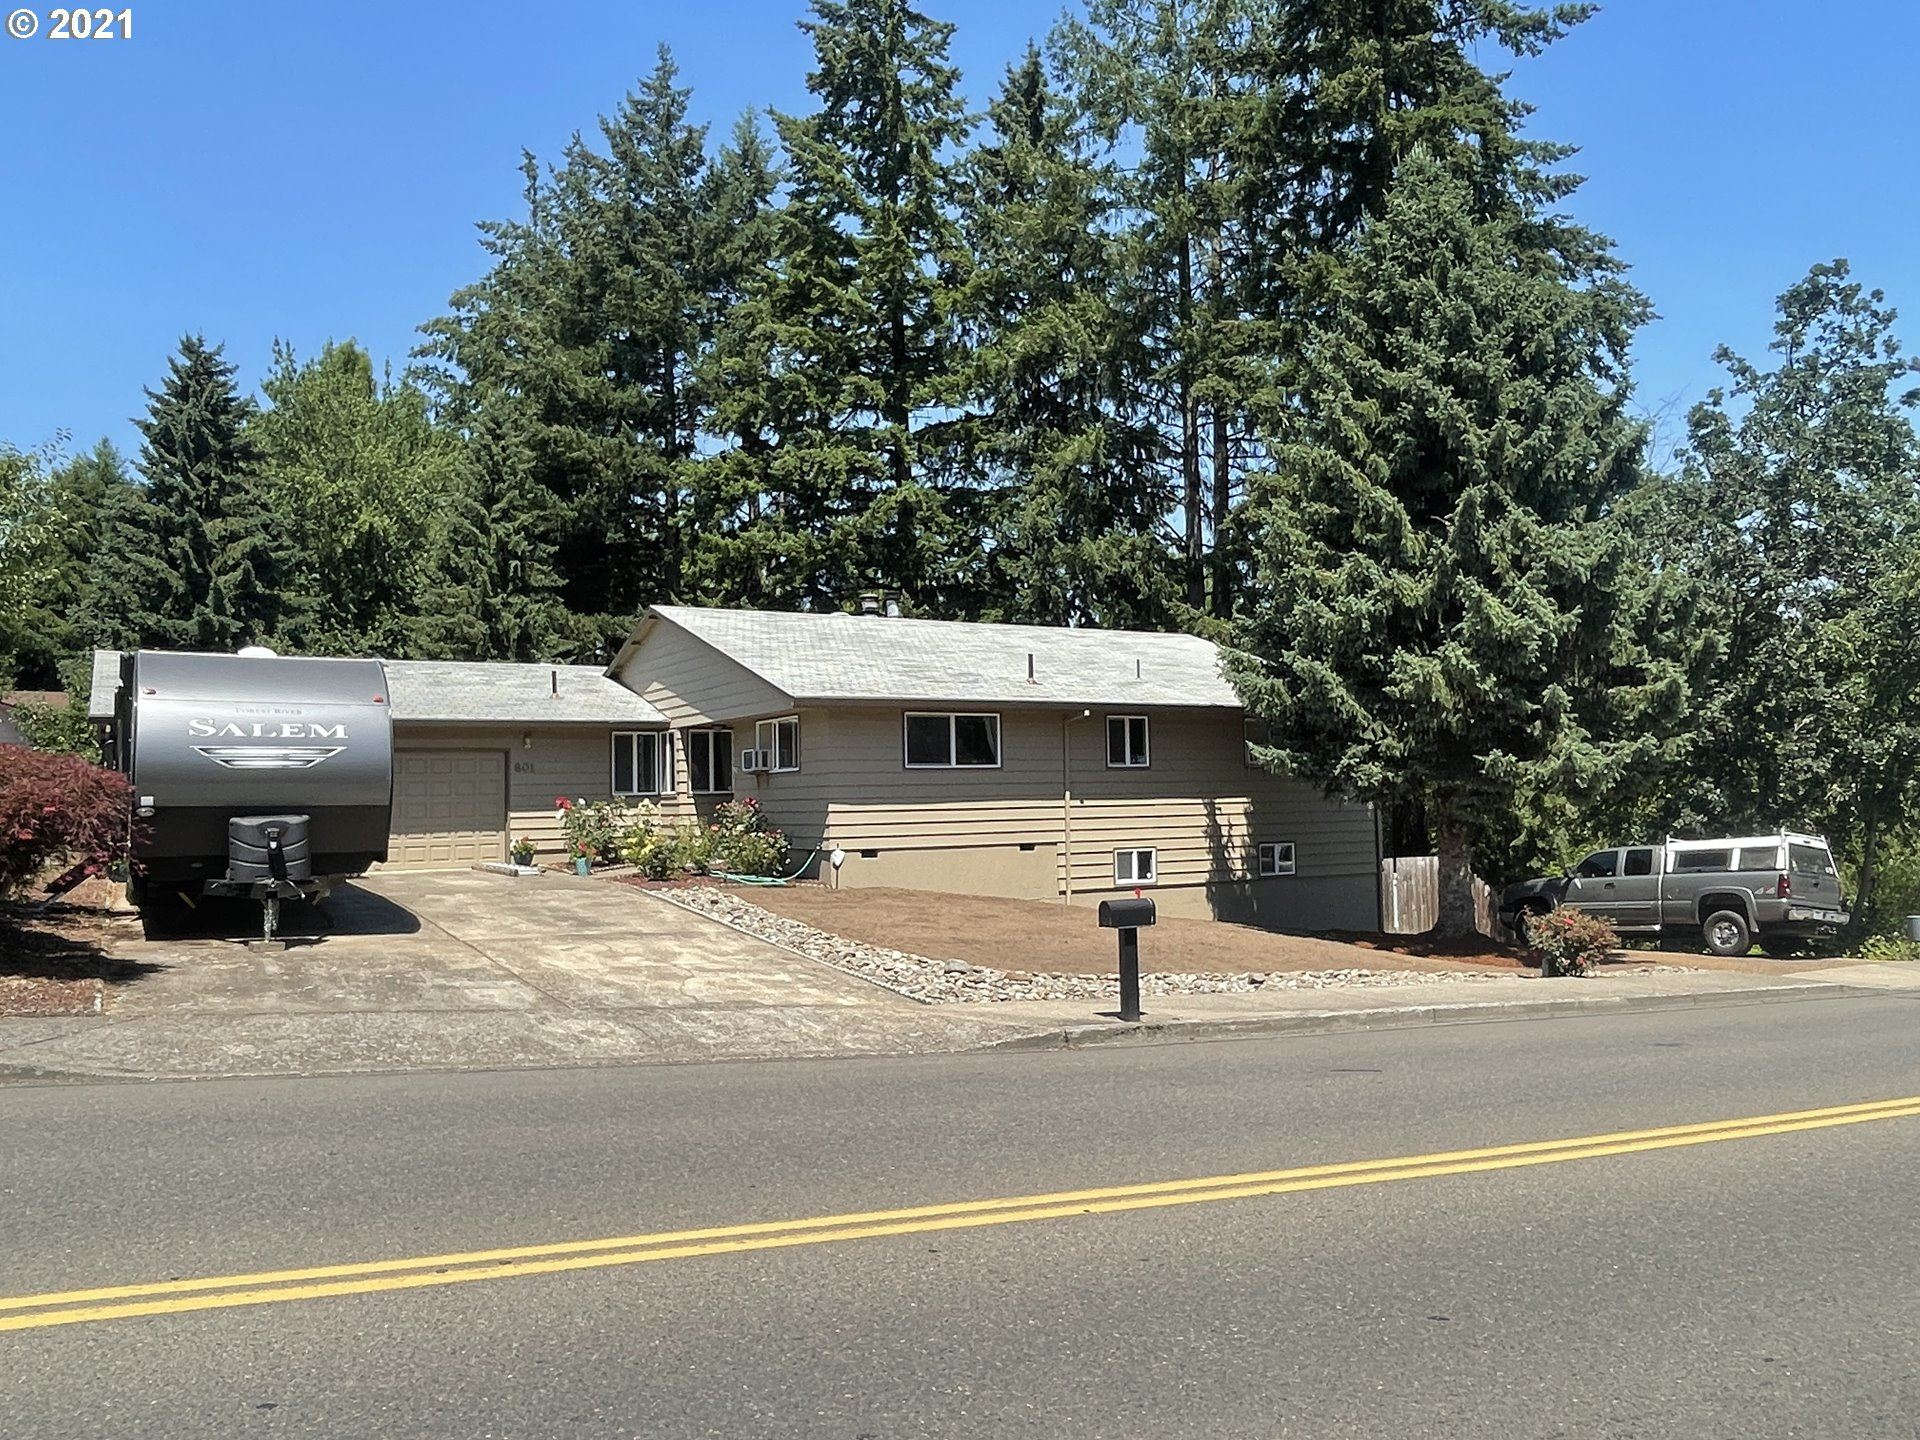 801 NW MICHELBOOK LN, McMinnville, OR 97128 - MLS#: 21687177